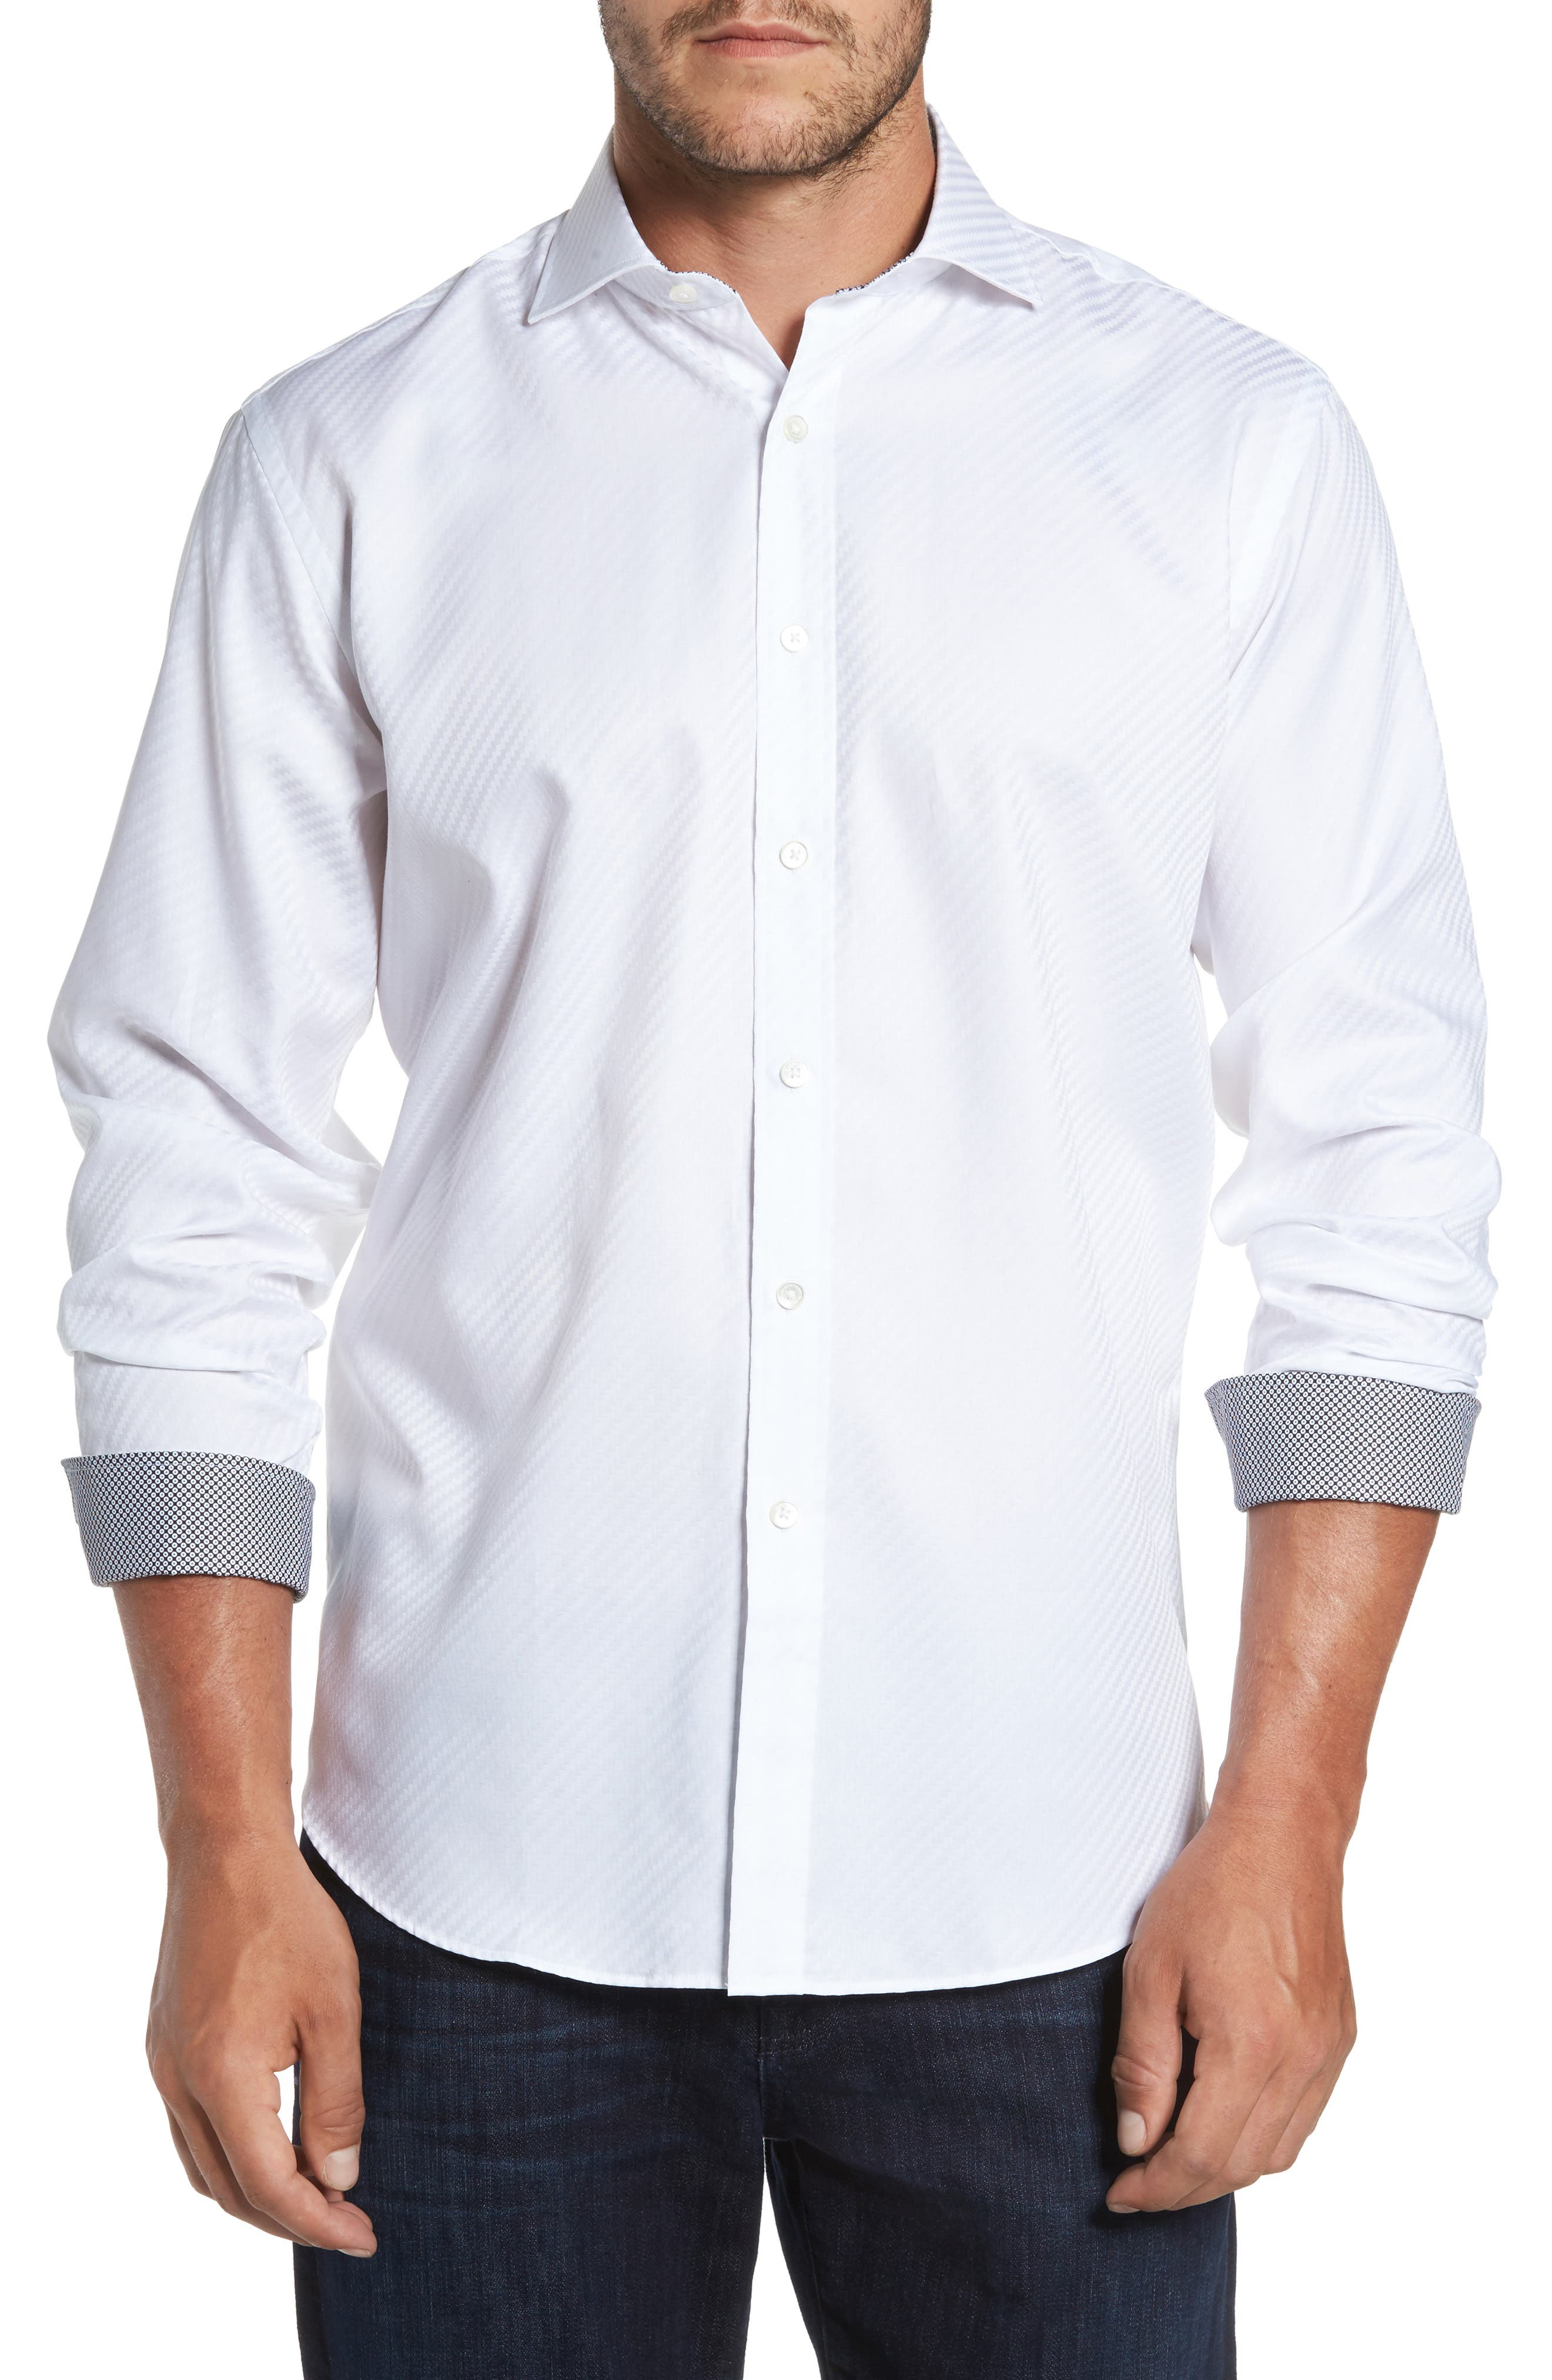 Classic Fit Diagonal Jacquard Sport Shirt,                             Main thumbnail 1, color,                             100